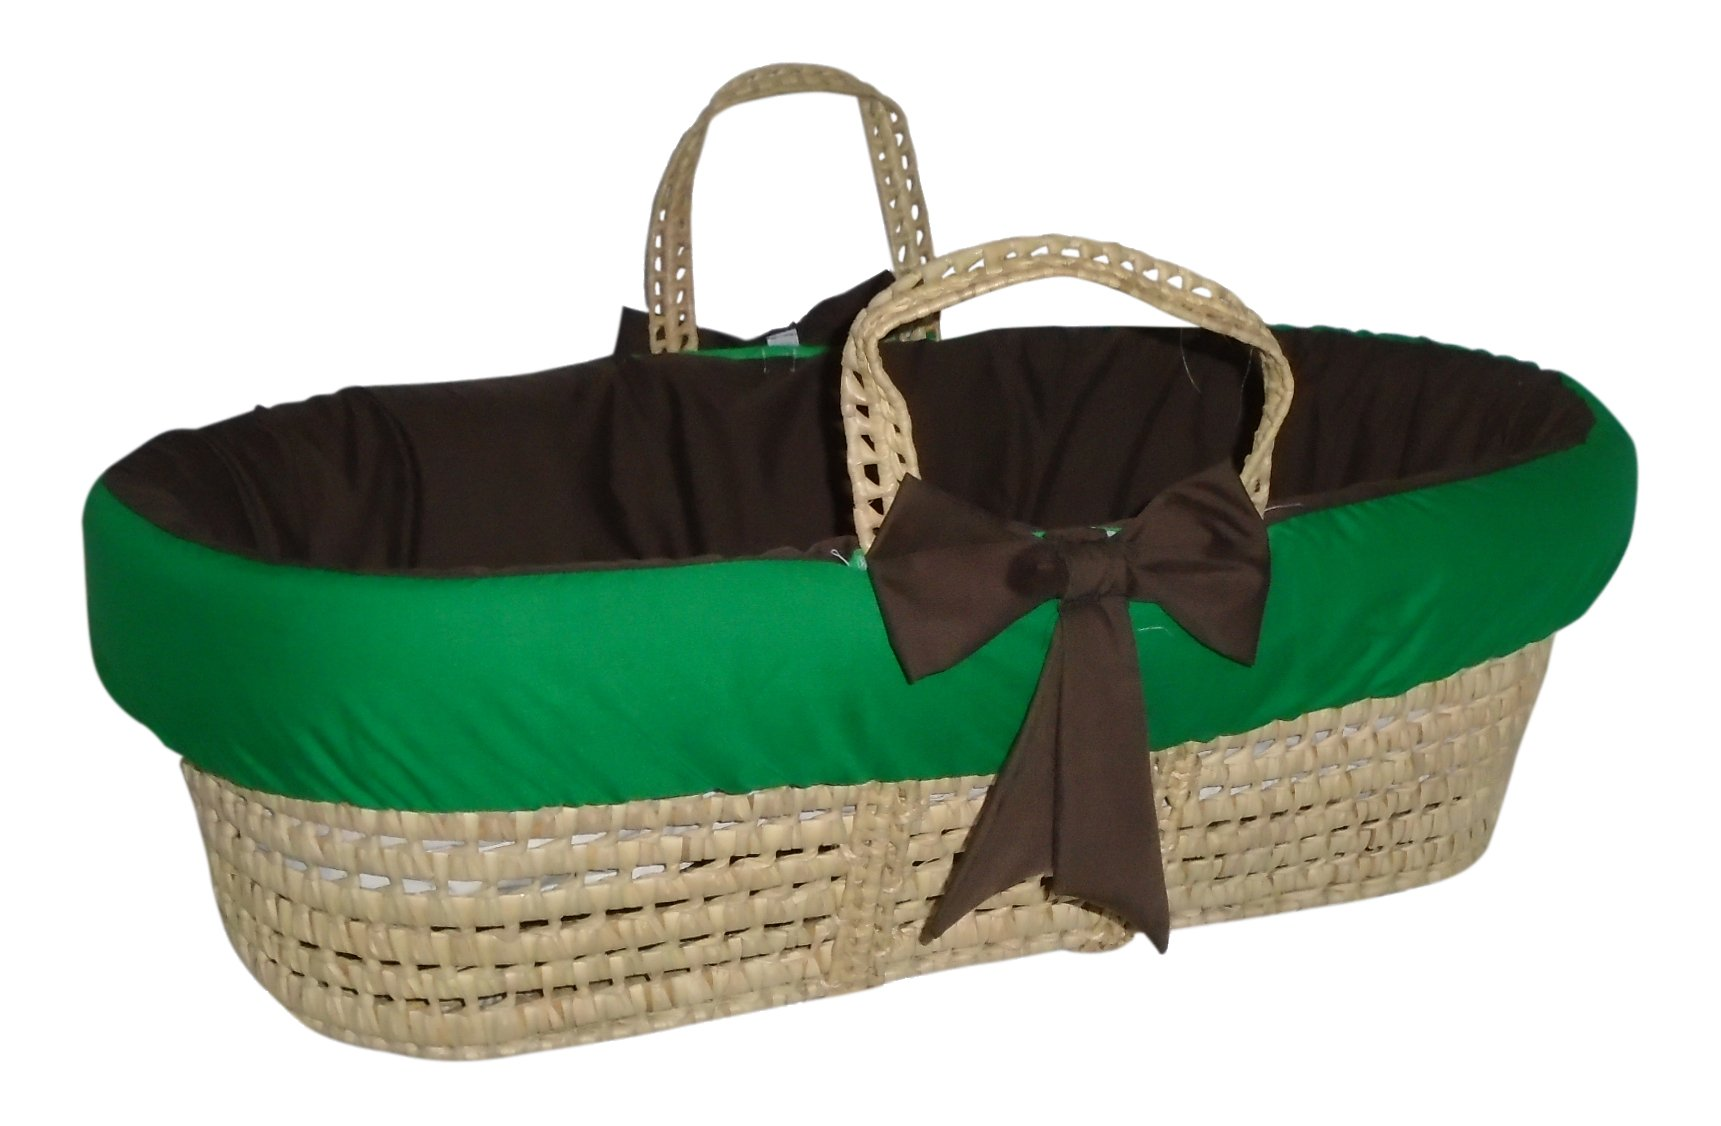 Baby Doll Bedding Reversible Moses Basket Bedding Set, Brown/Green by BabyDoll Bedding